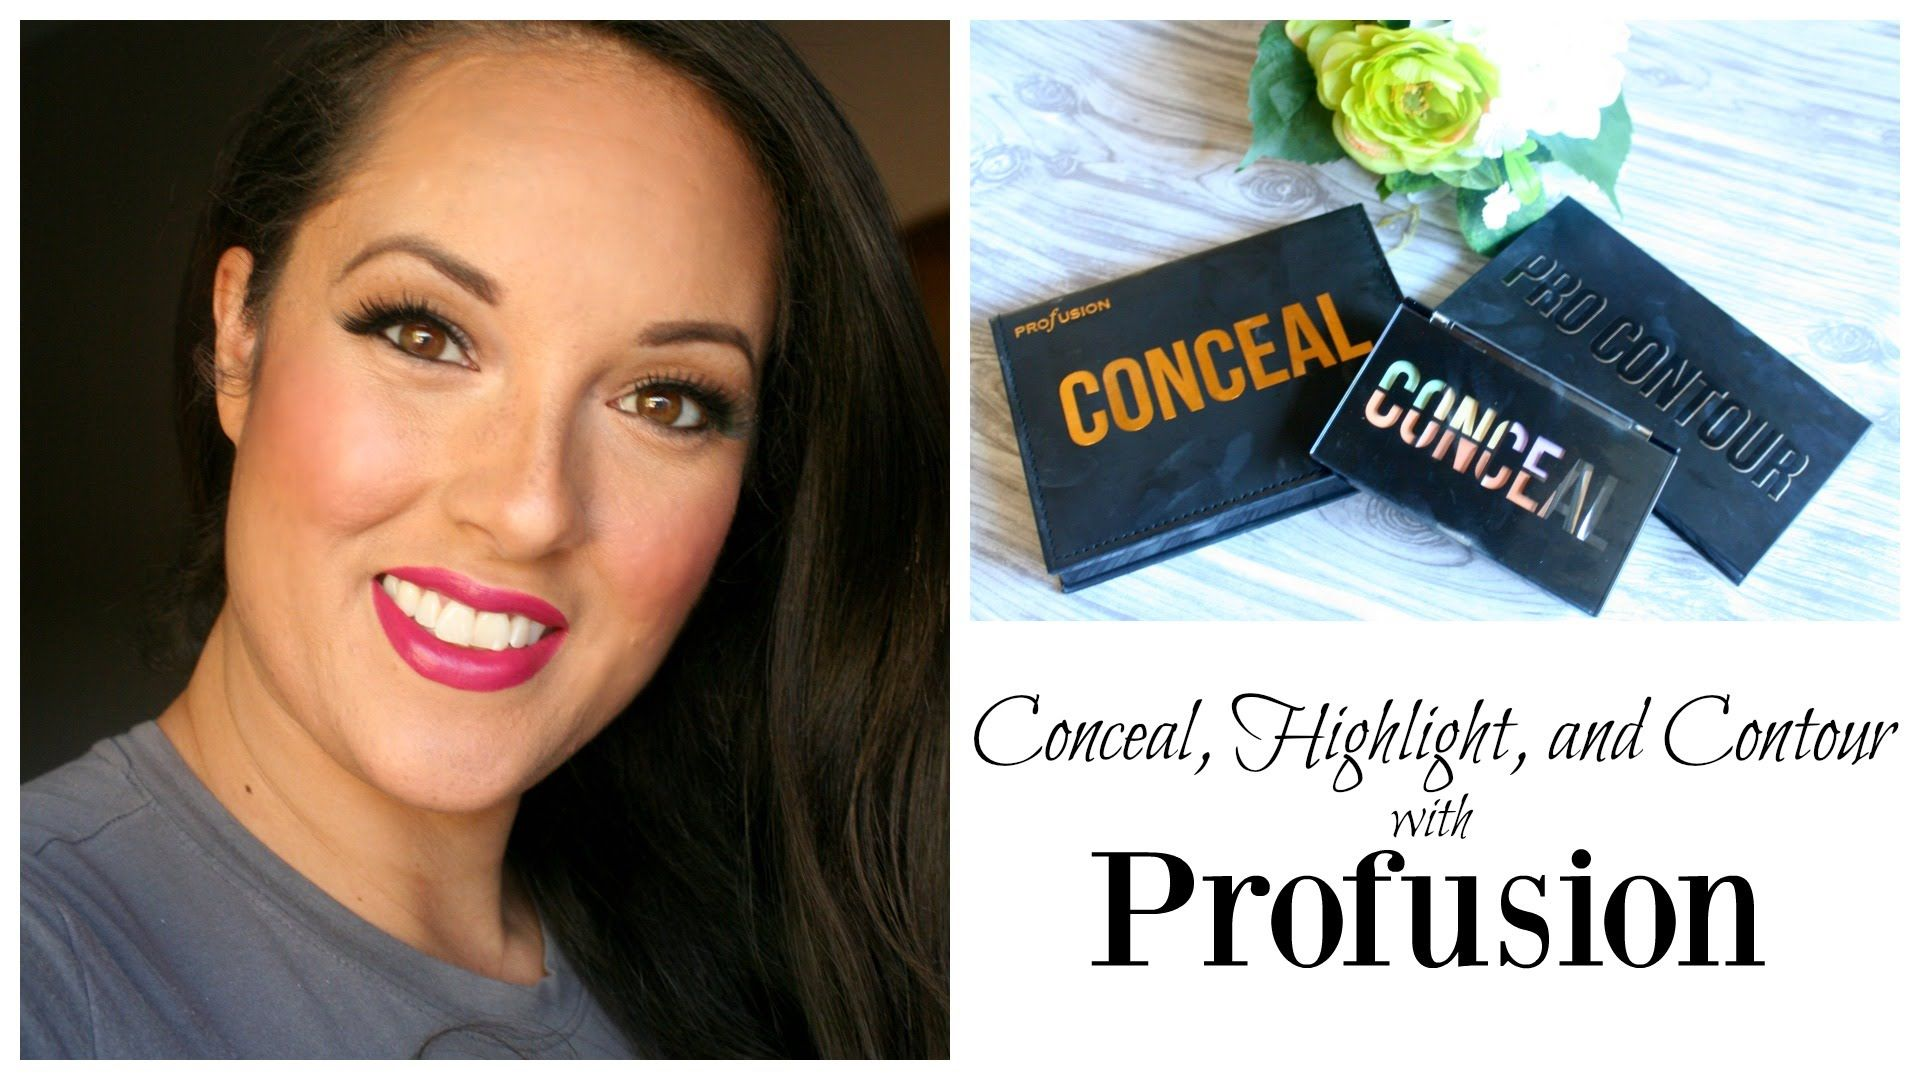 Conceal highlight and contour with profusion color correcting conceal highlight and contour with profusion a makeup tutorial on color correcting for dark spots dark circles and redness along with cream and powder baditri Image collections